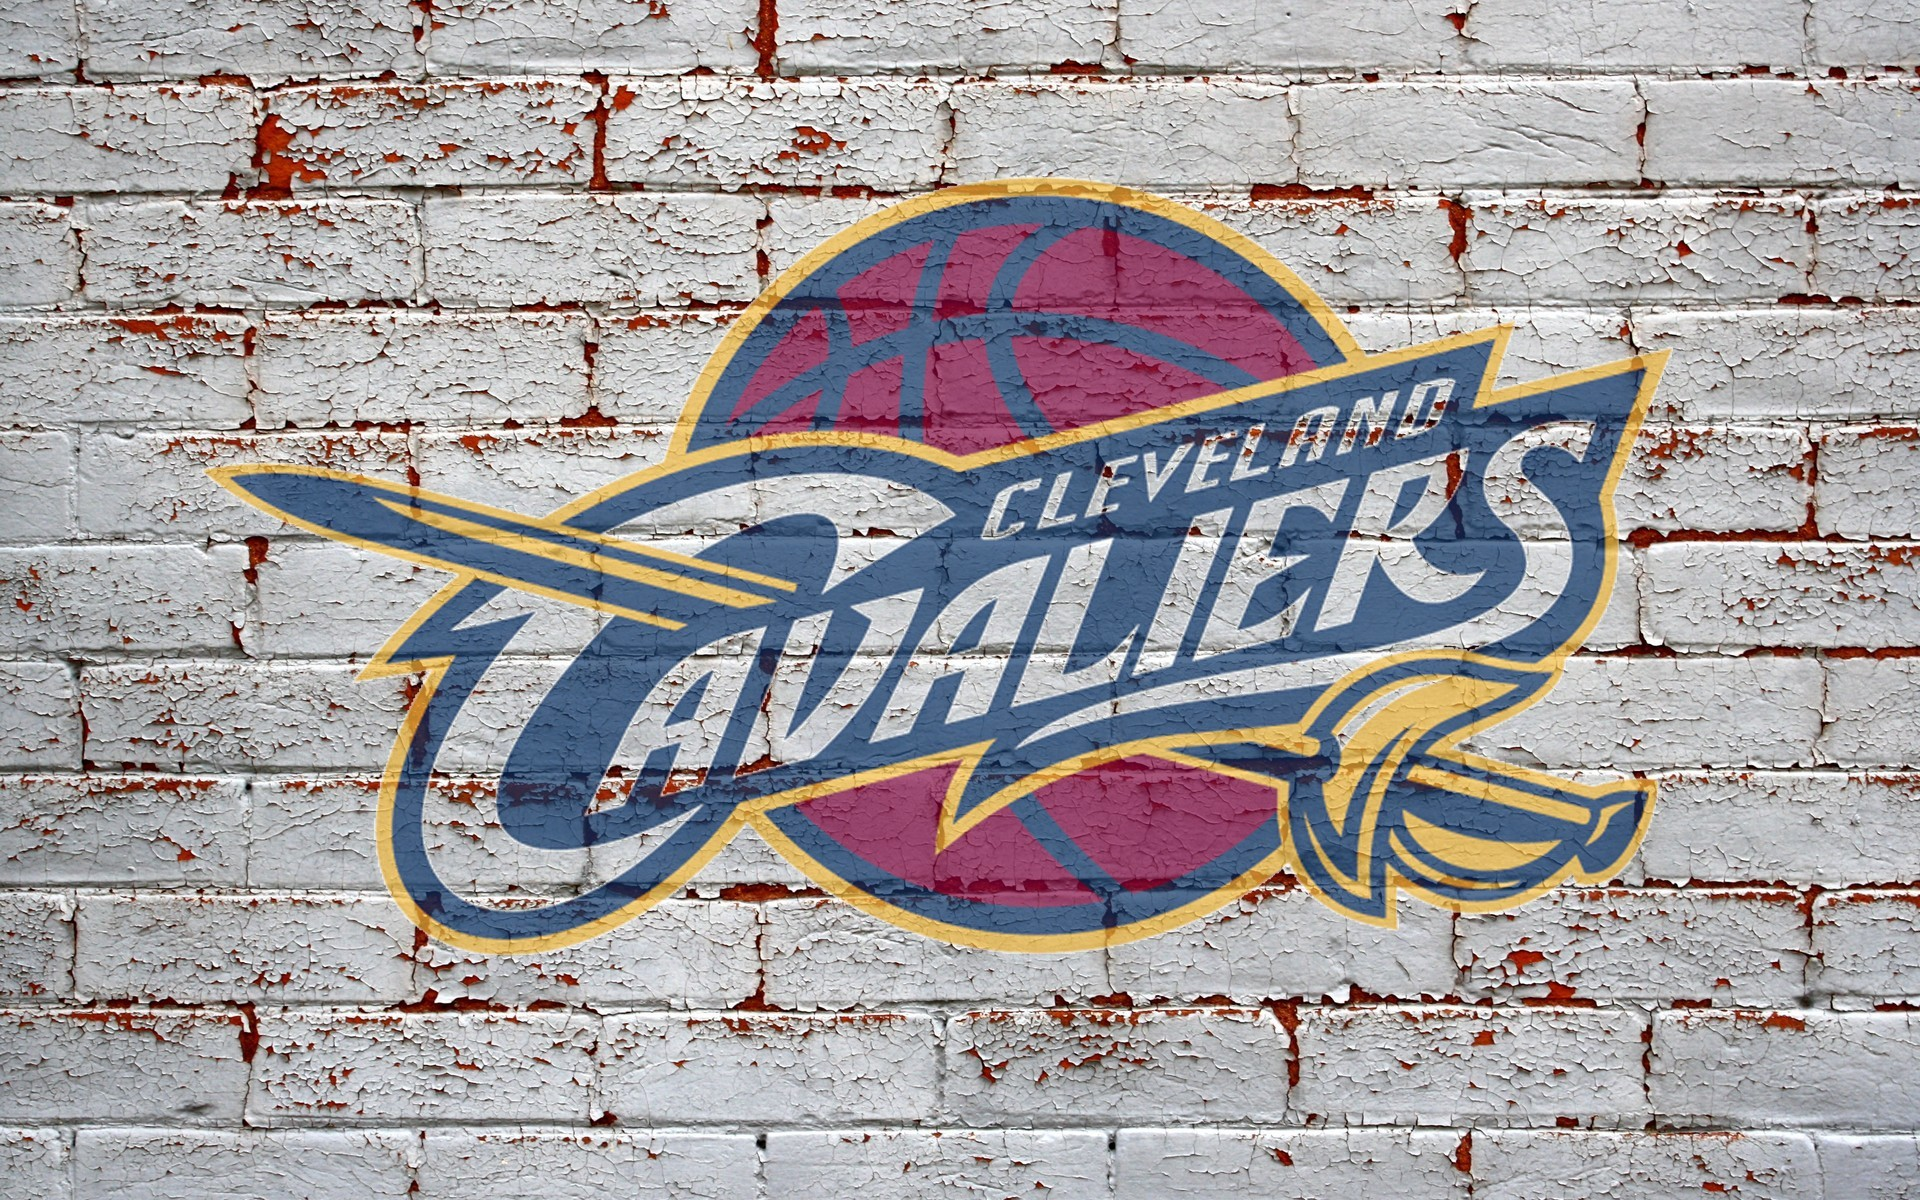 Res: 1920x1200, CLEVELAND CAVALIERS Nba Basketball team logo wallpaper Wallpapers HD /  Desktop and Mobile Backgrounds